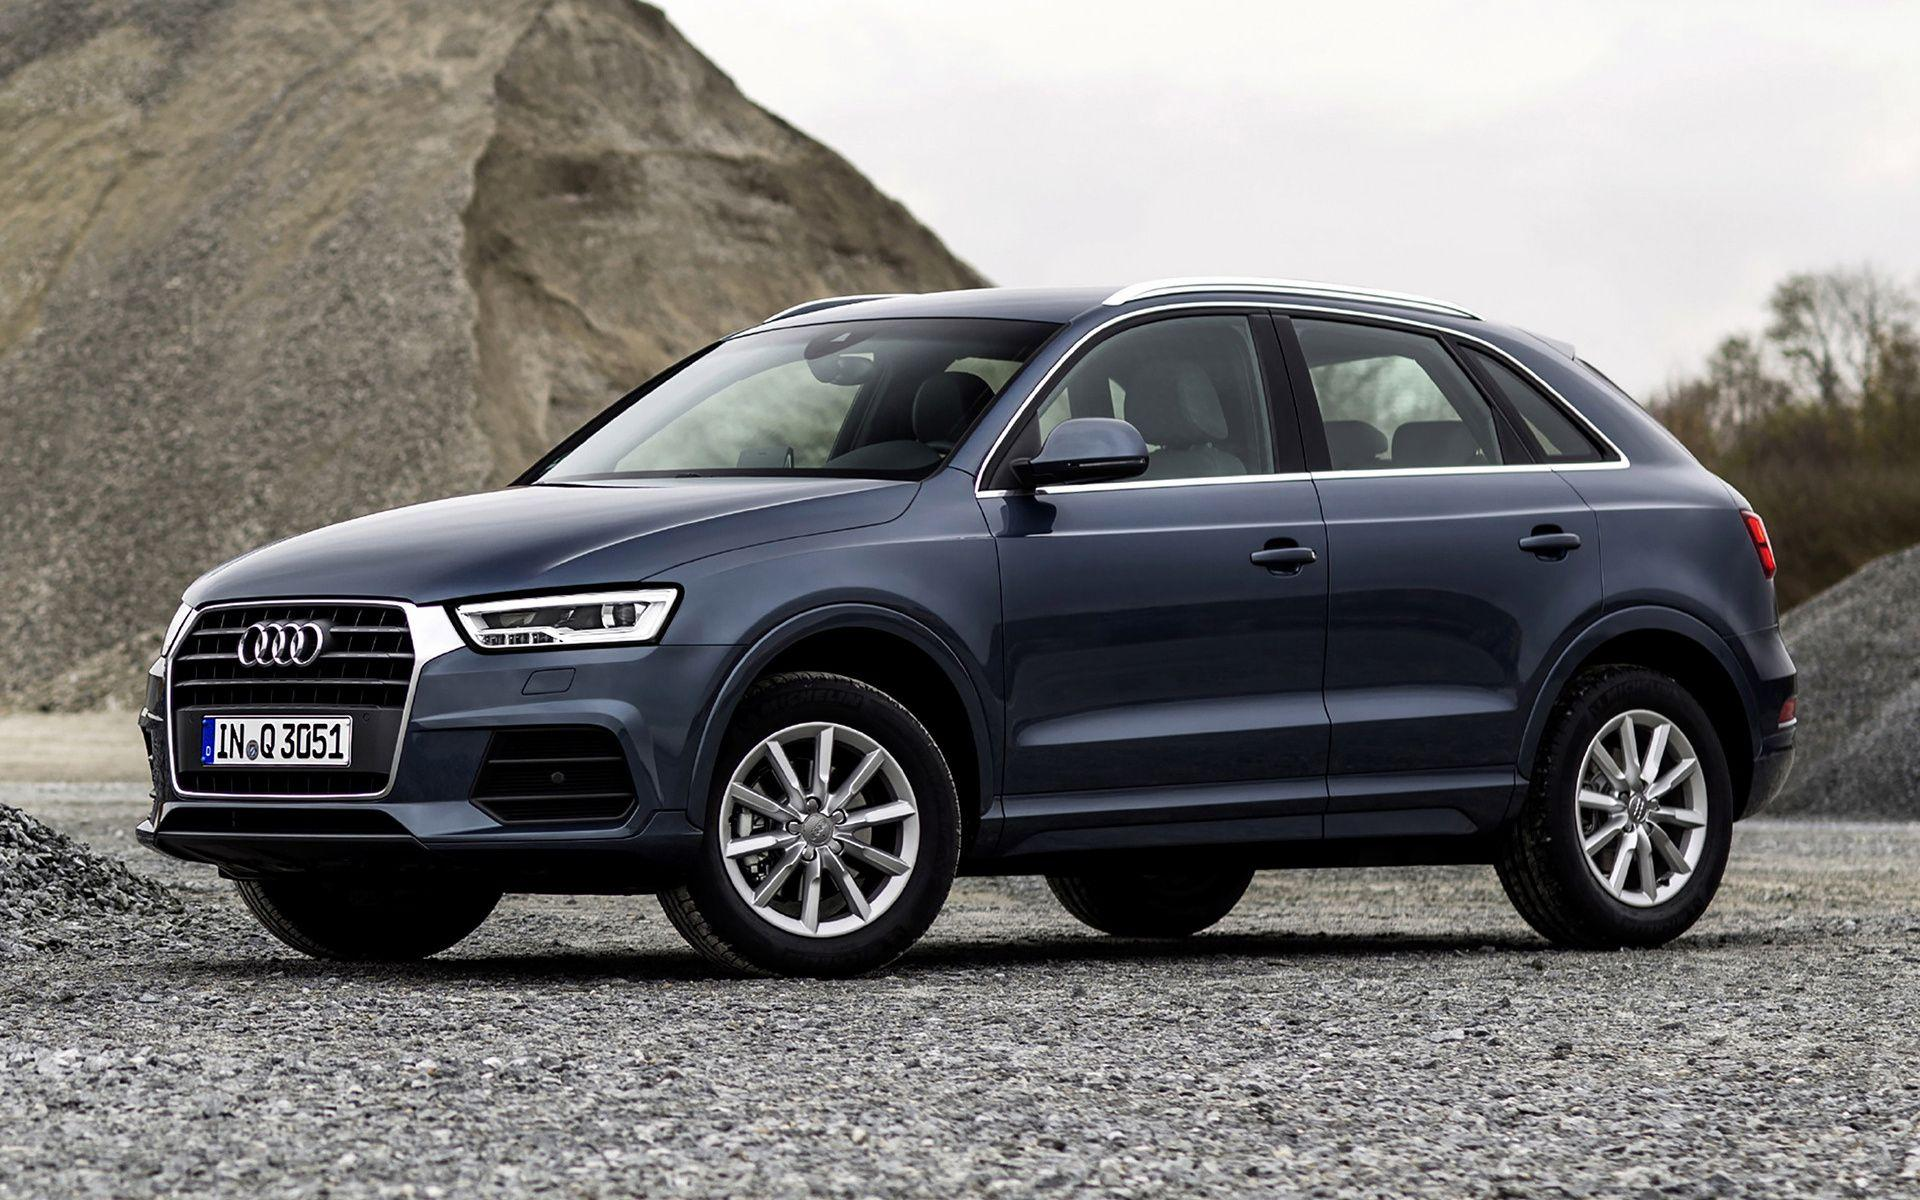 Audi Q3 (2015) Wallpapers and HD Images - Car Pixel